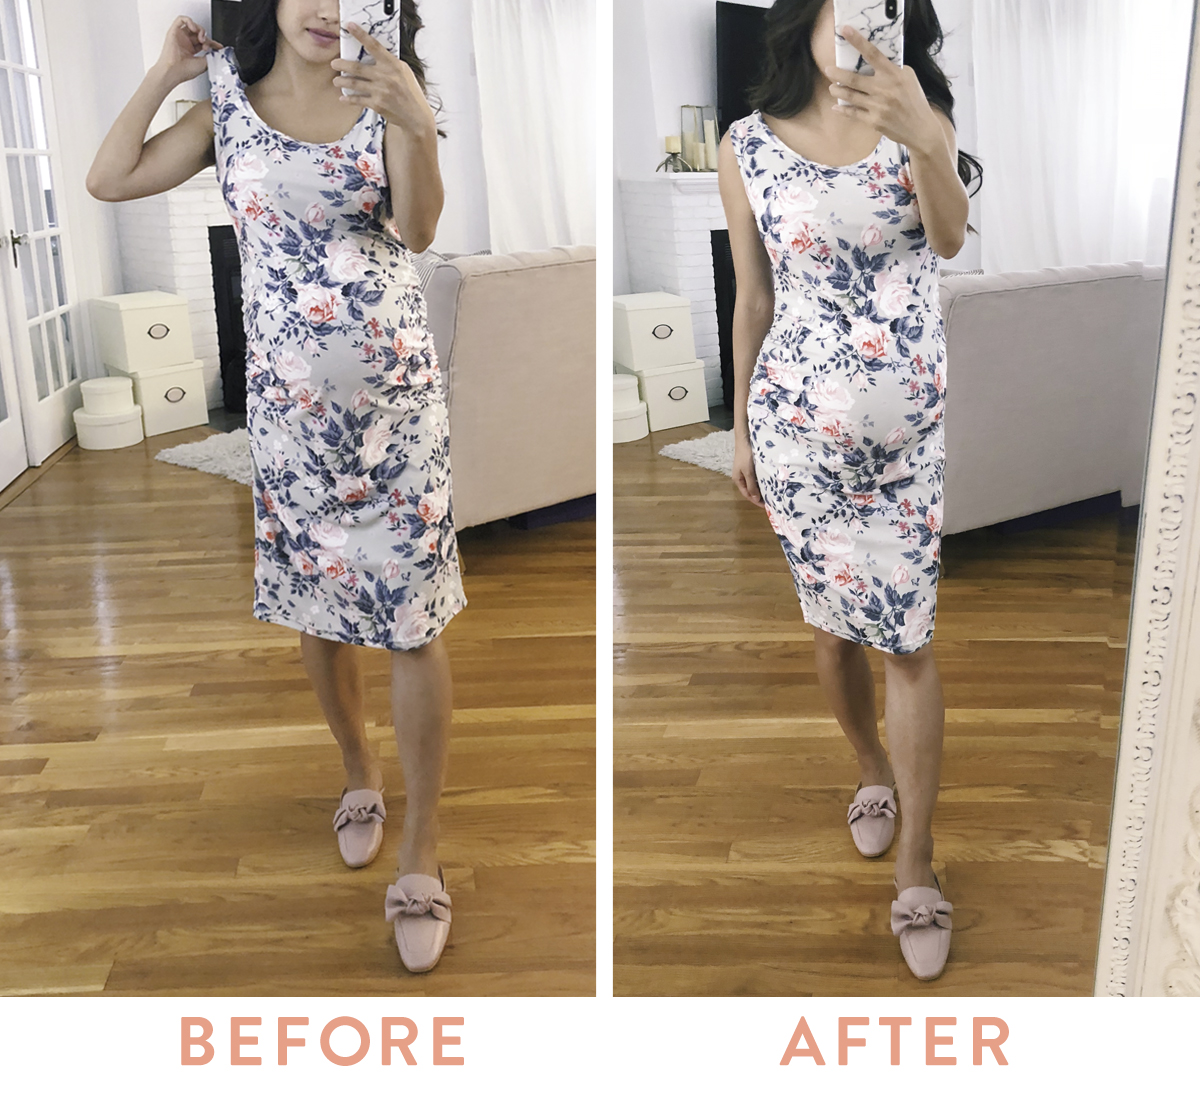 dress DIY alterations tutorial for petite women